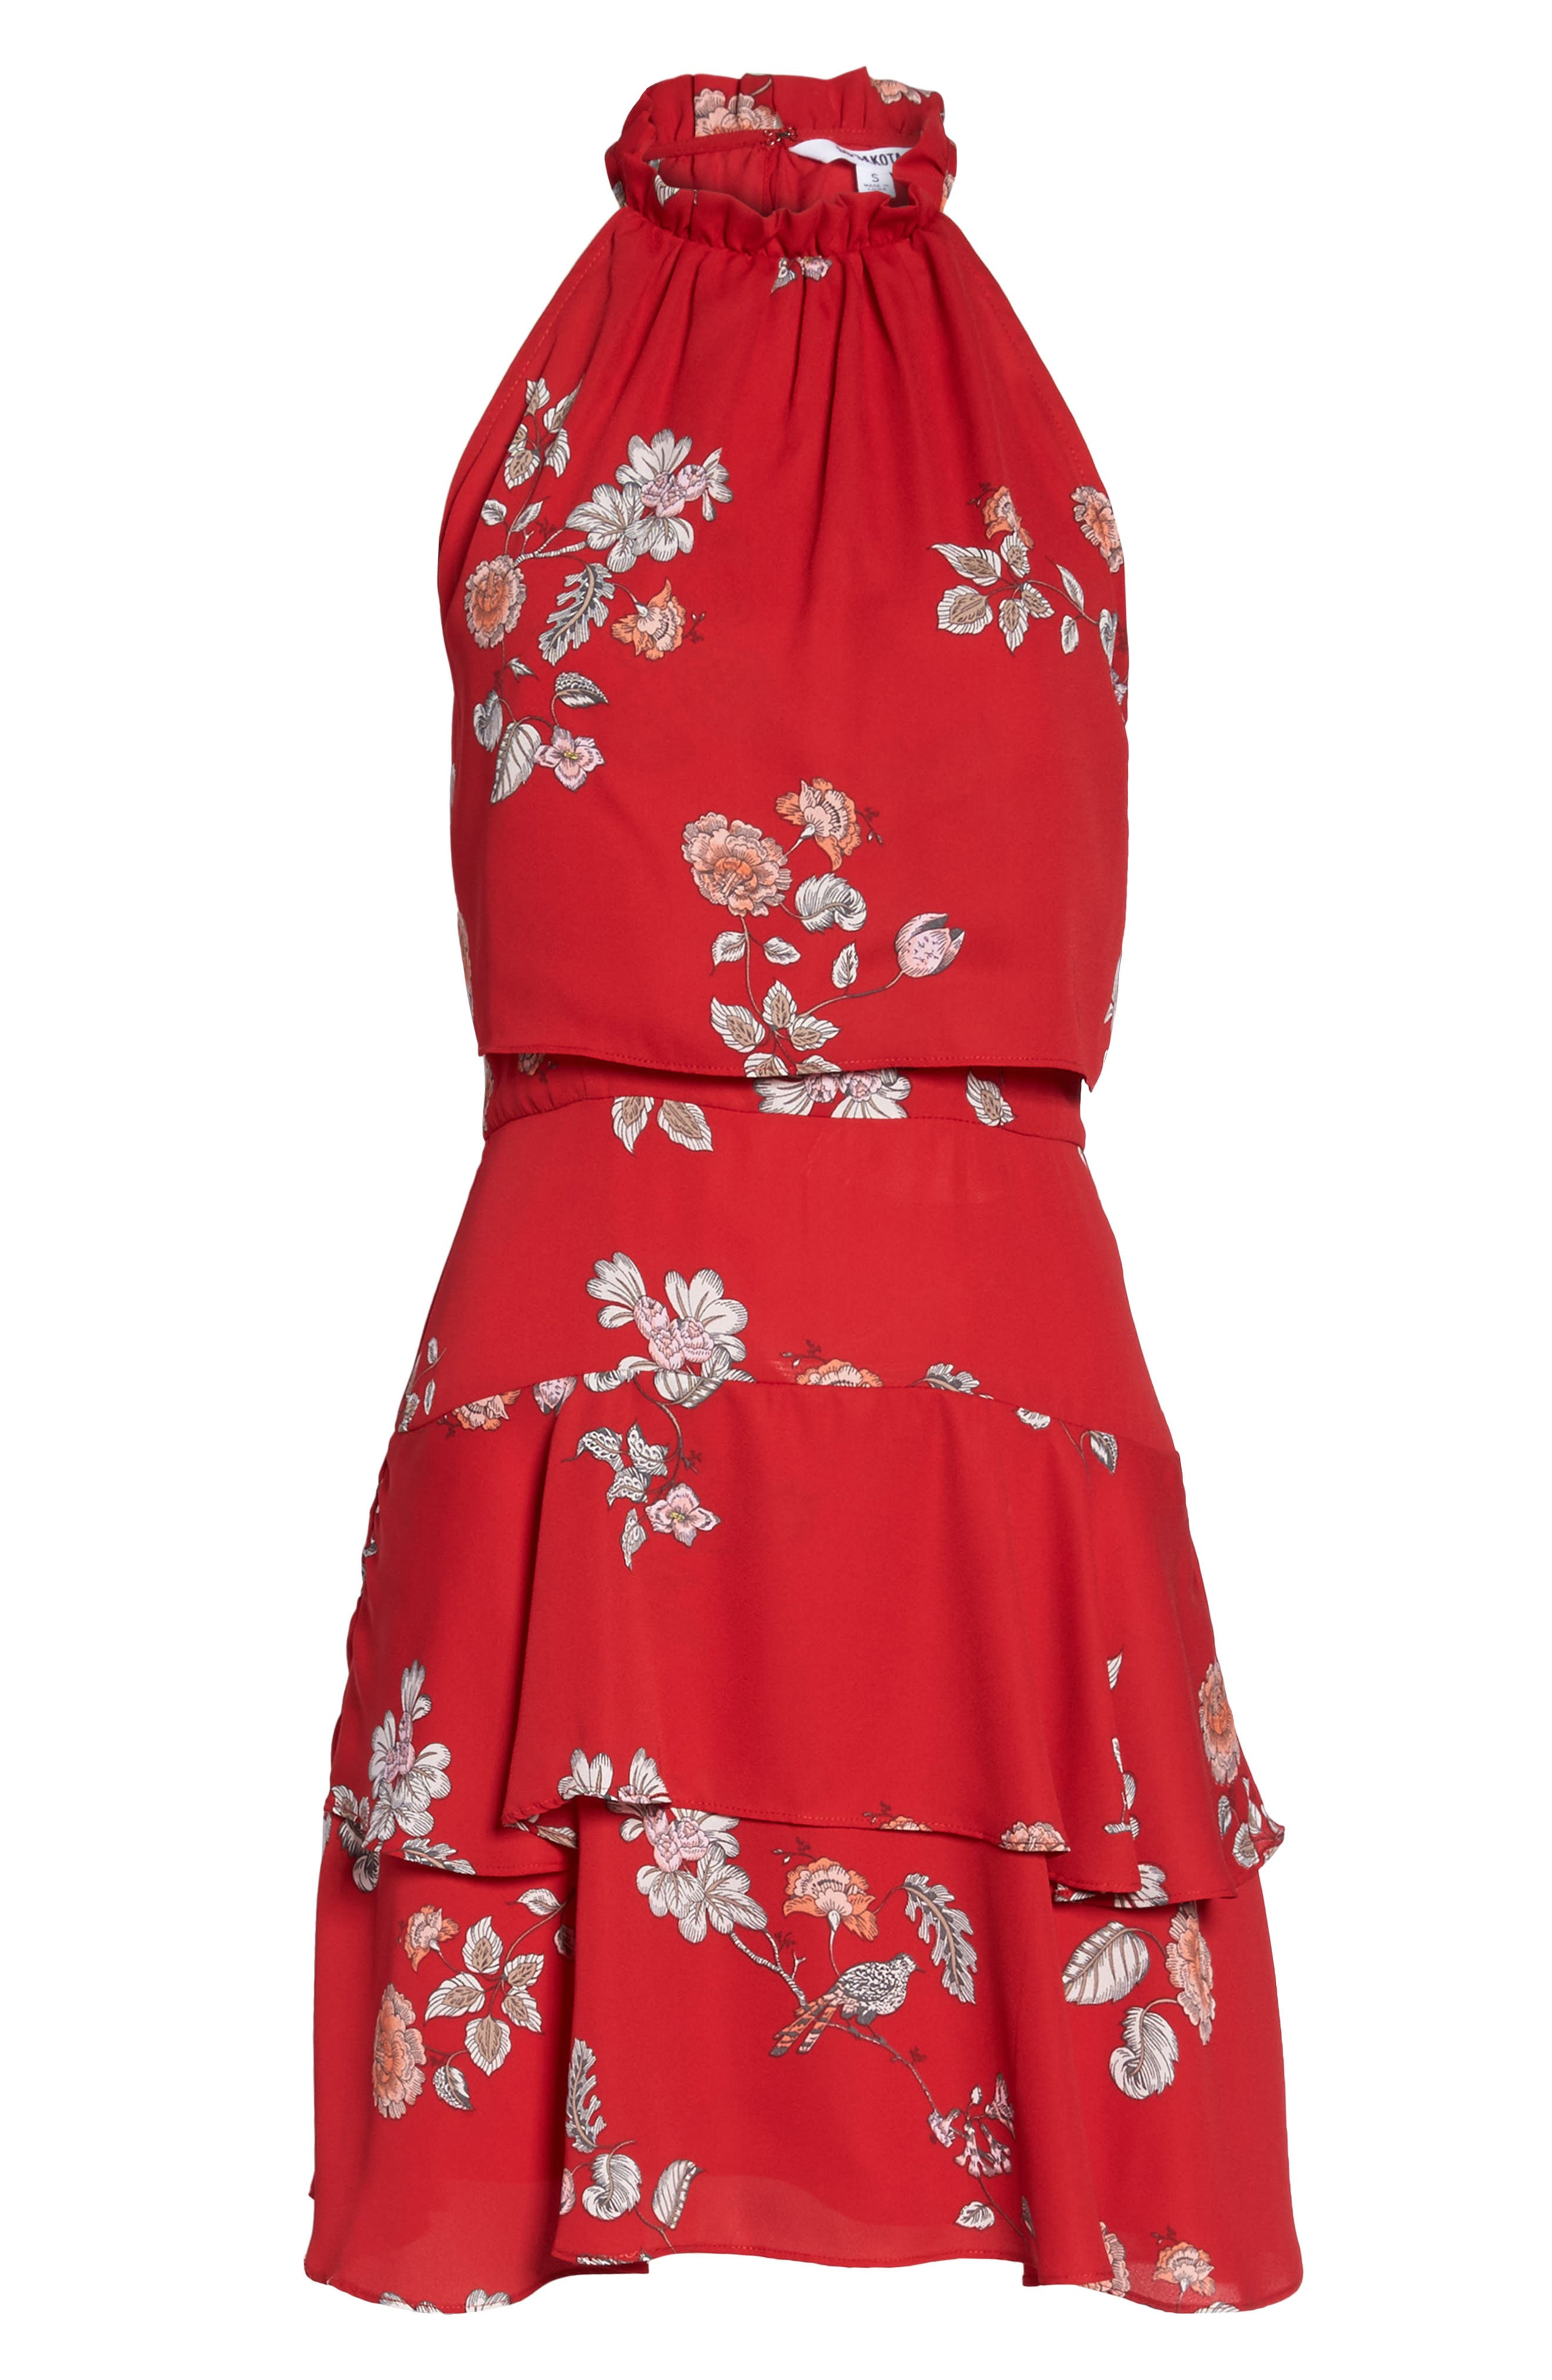 Cadence Ruffle Halter Dress,                             Alternate thumbnail 6, color,                             Red